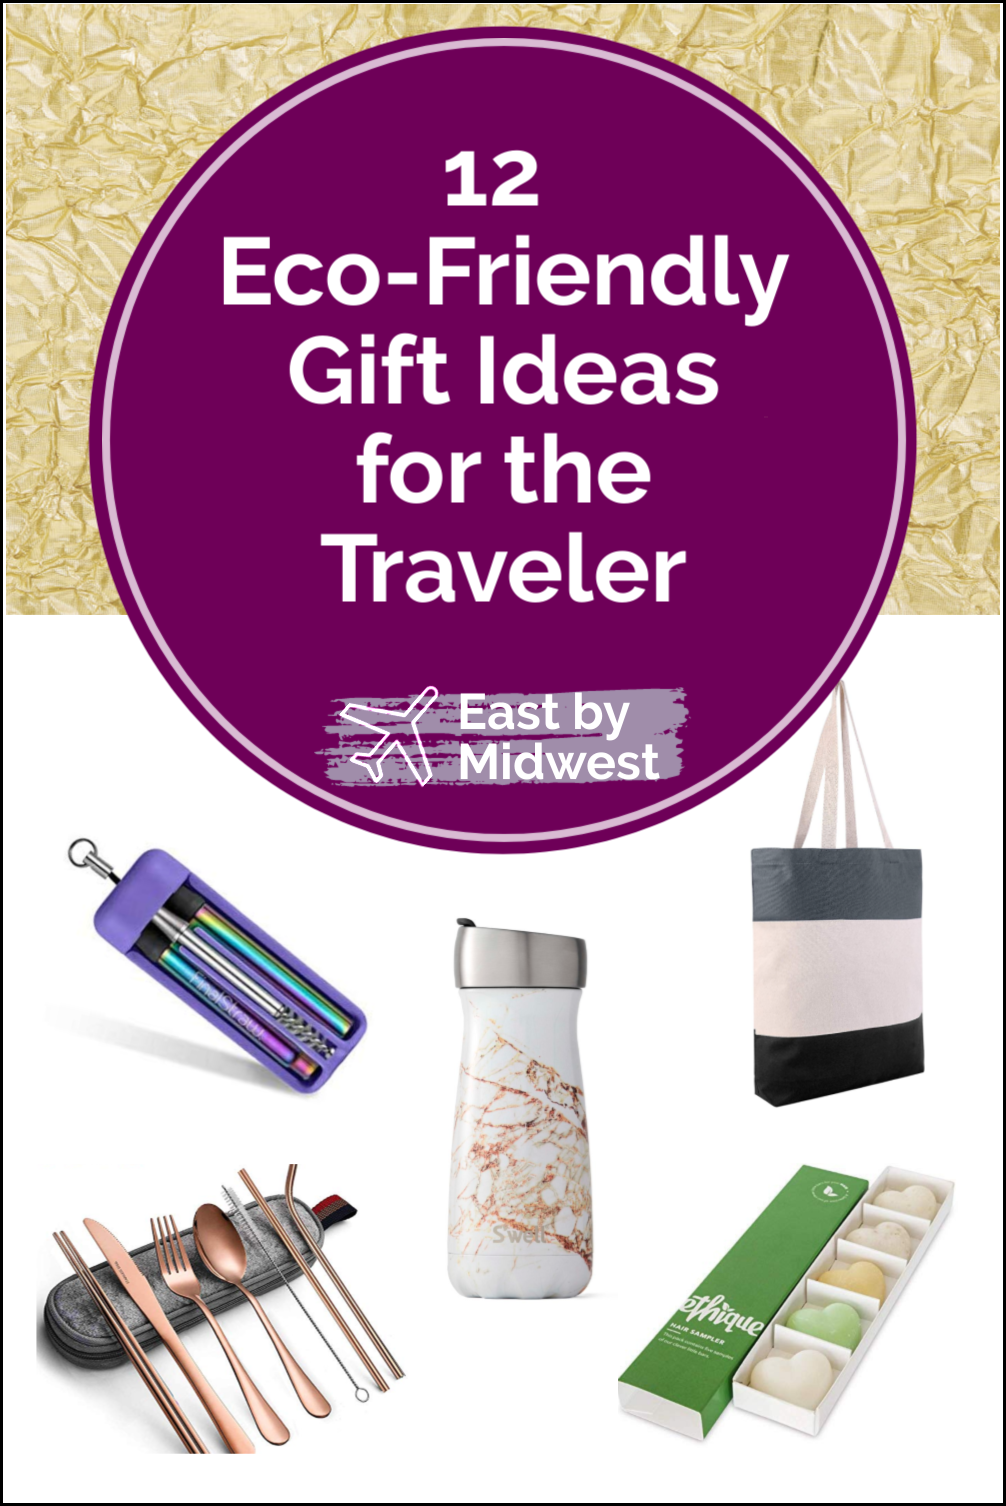 12 Eco-Friendly Gift Ideas for the Traveler in Your Life